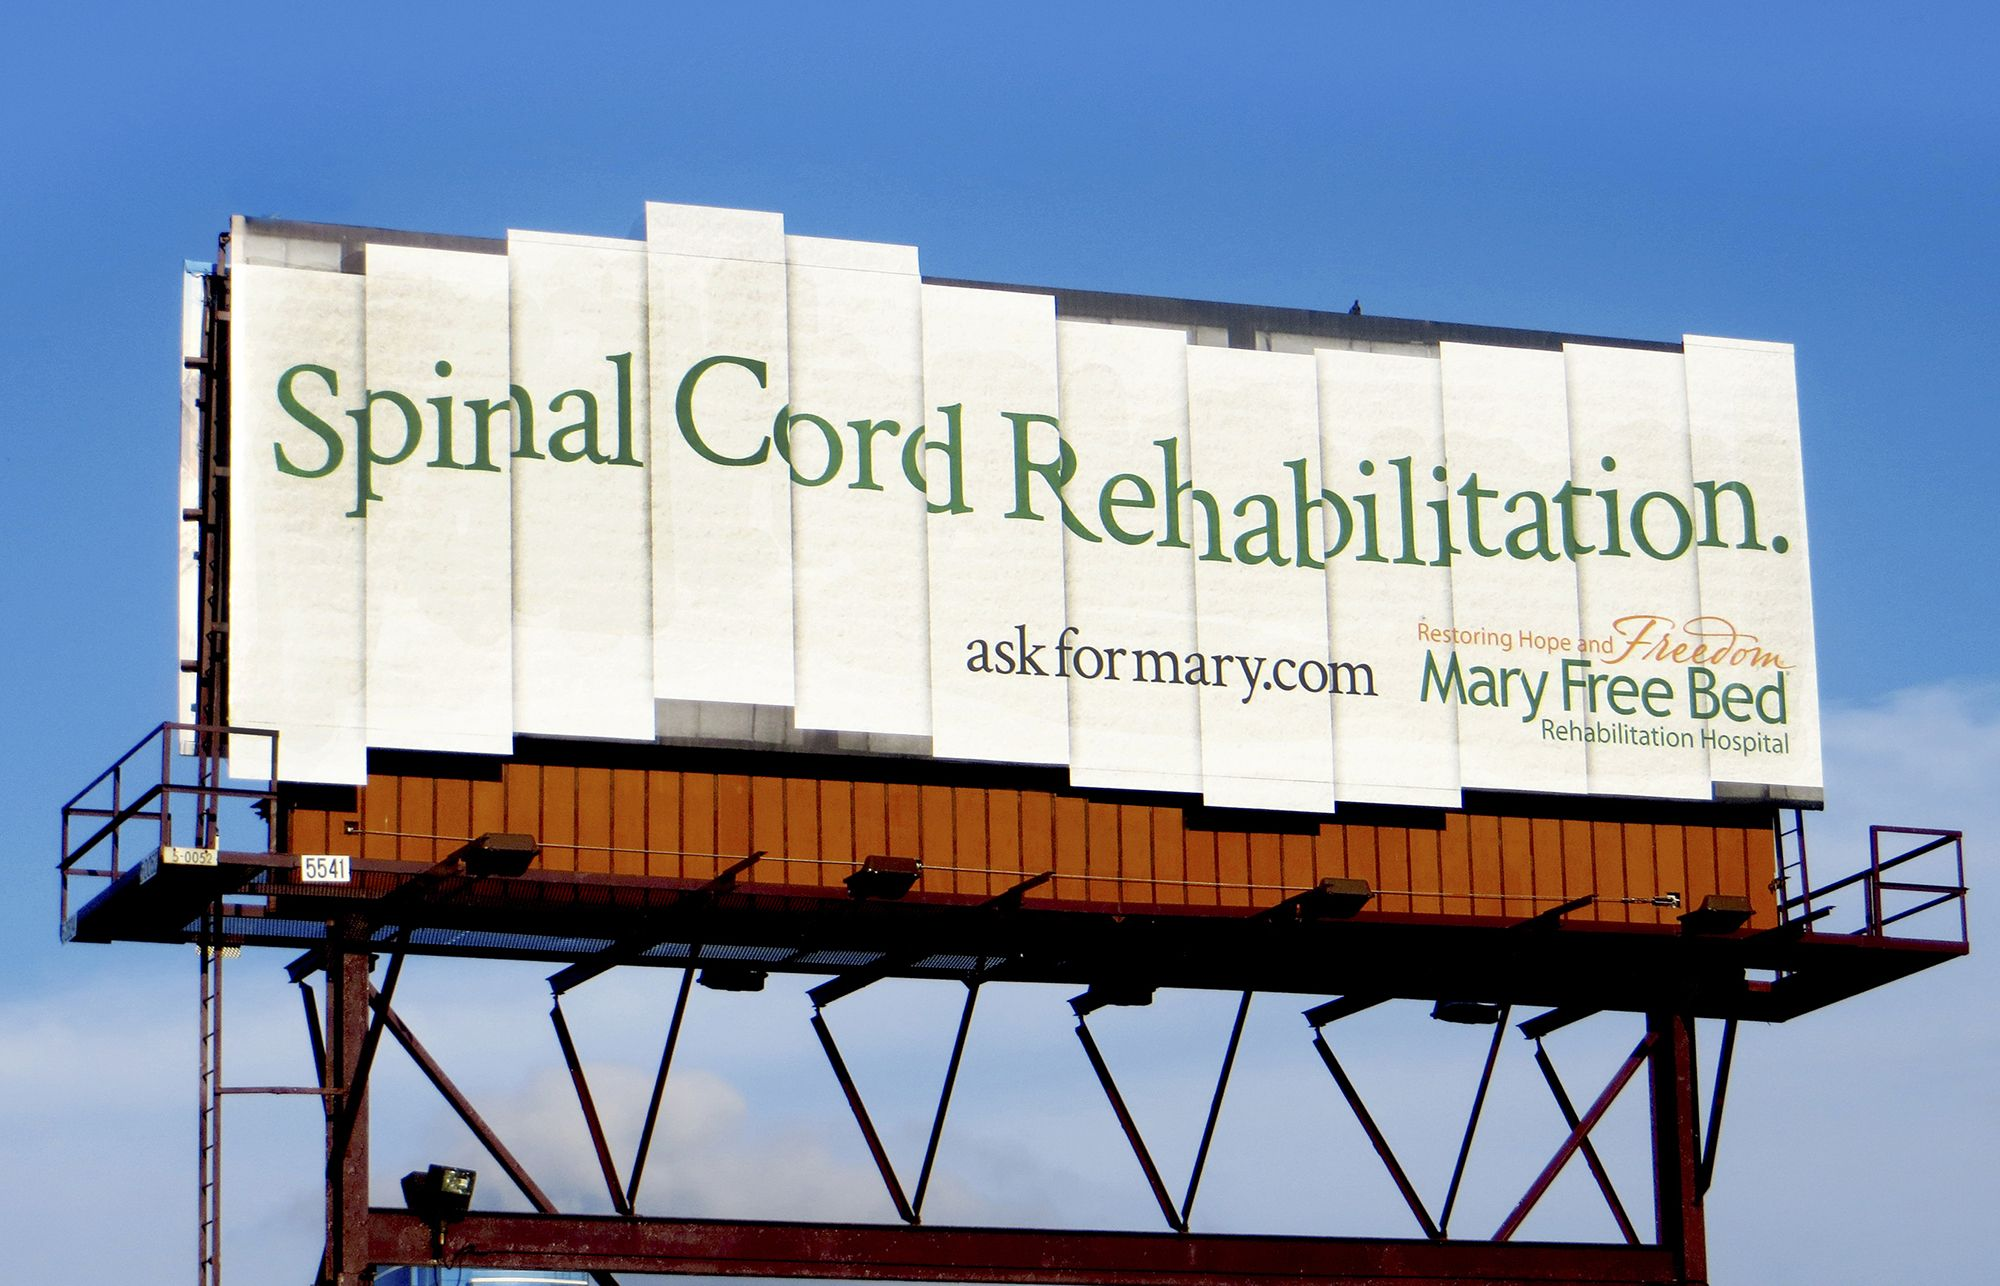 OOH Rehabilitation Creative Billboard advertising